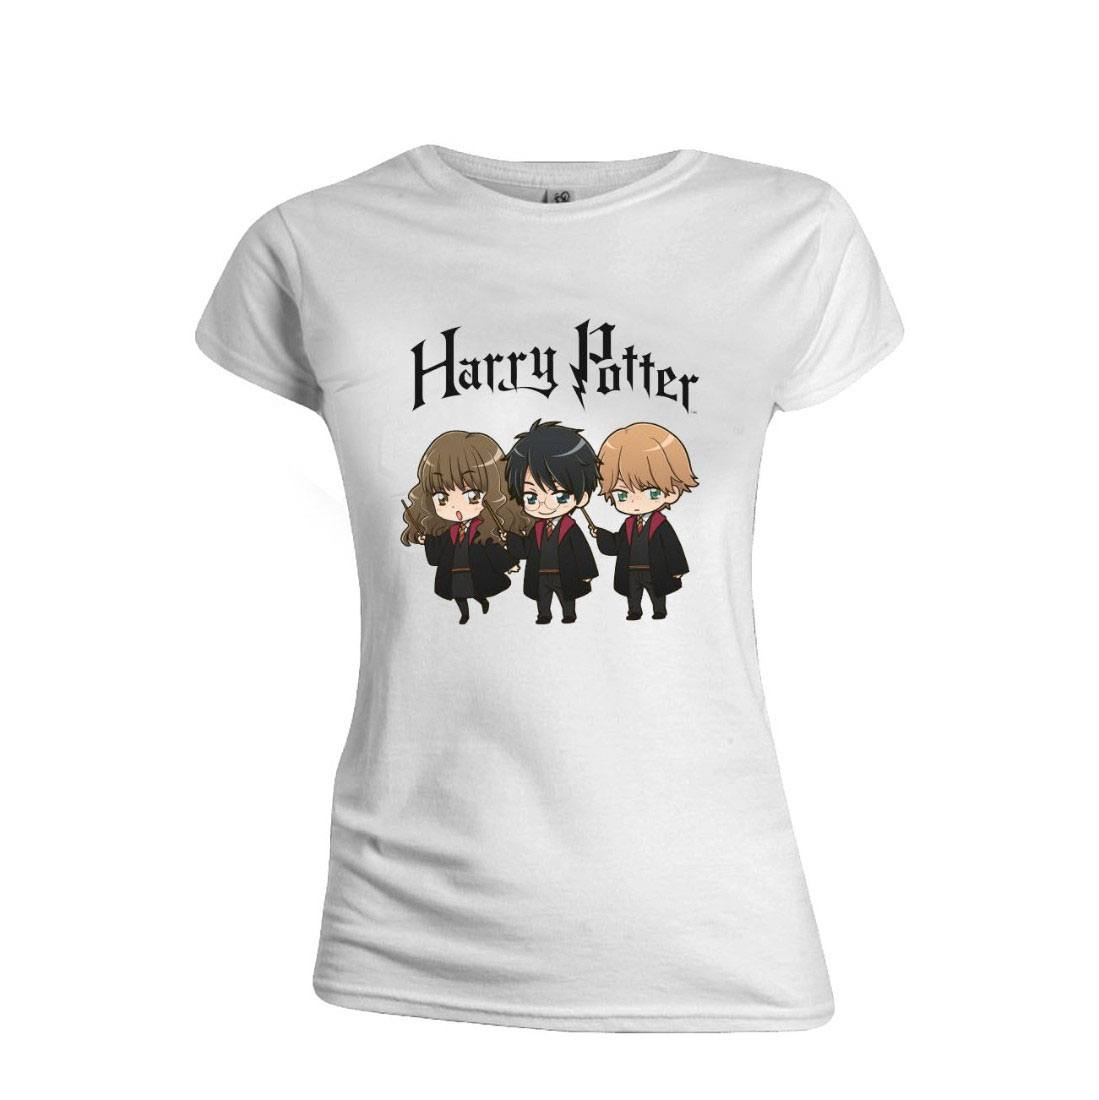 Harry Potter Ladies T-Shirt Characters Size M